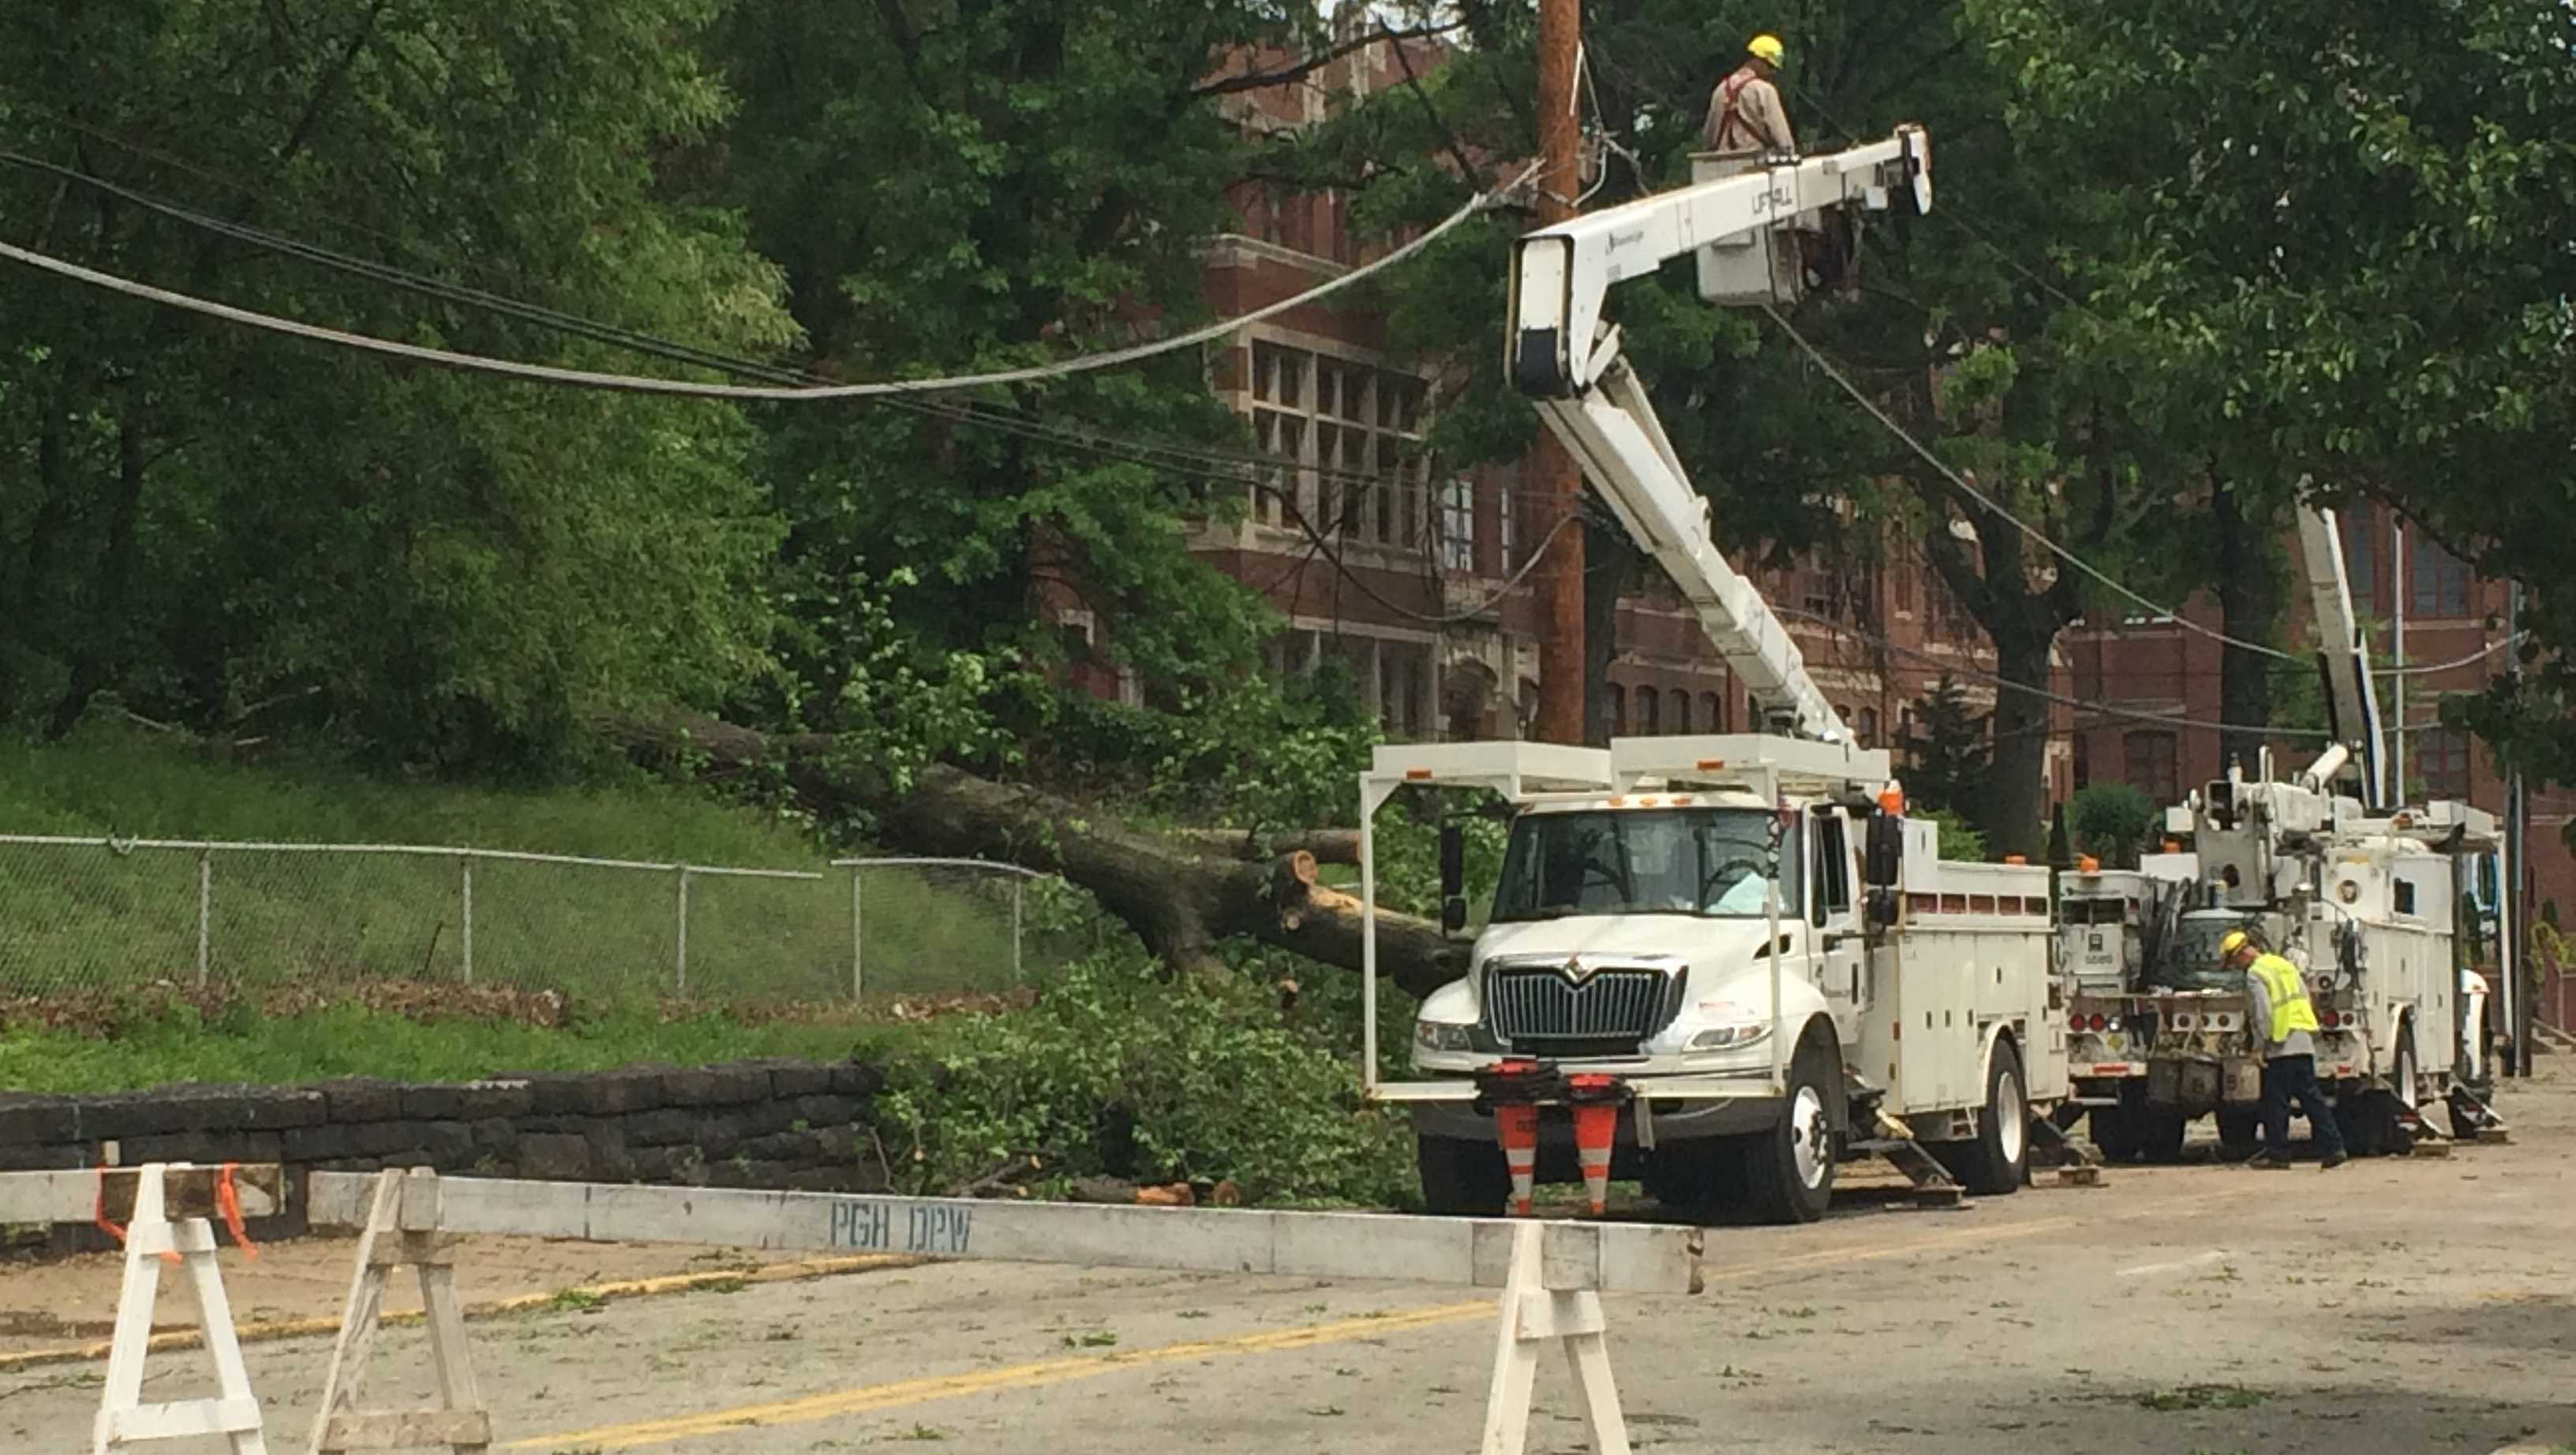 A large tree fell and took out nine sections of wires at Bedford Avenue and Devilliers Street in the Hill District.